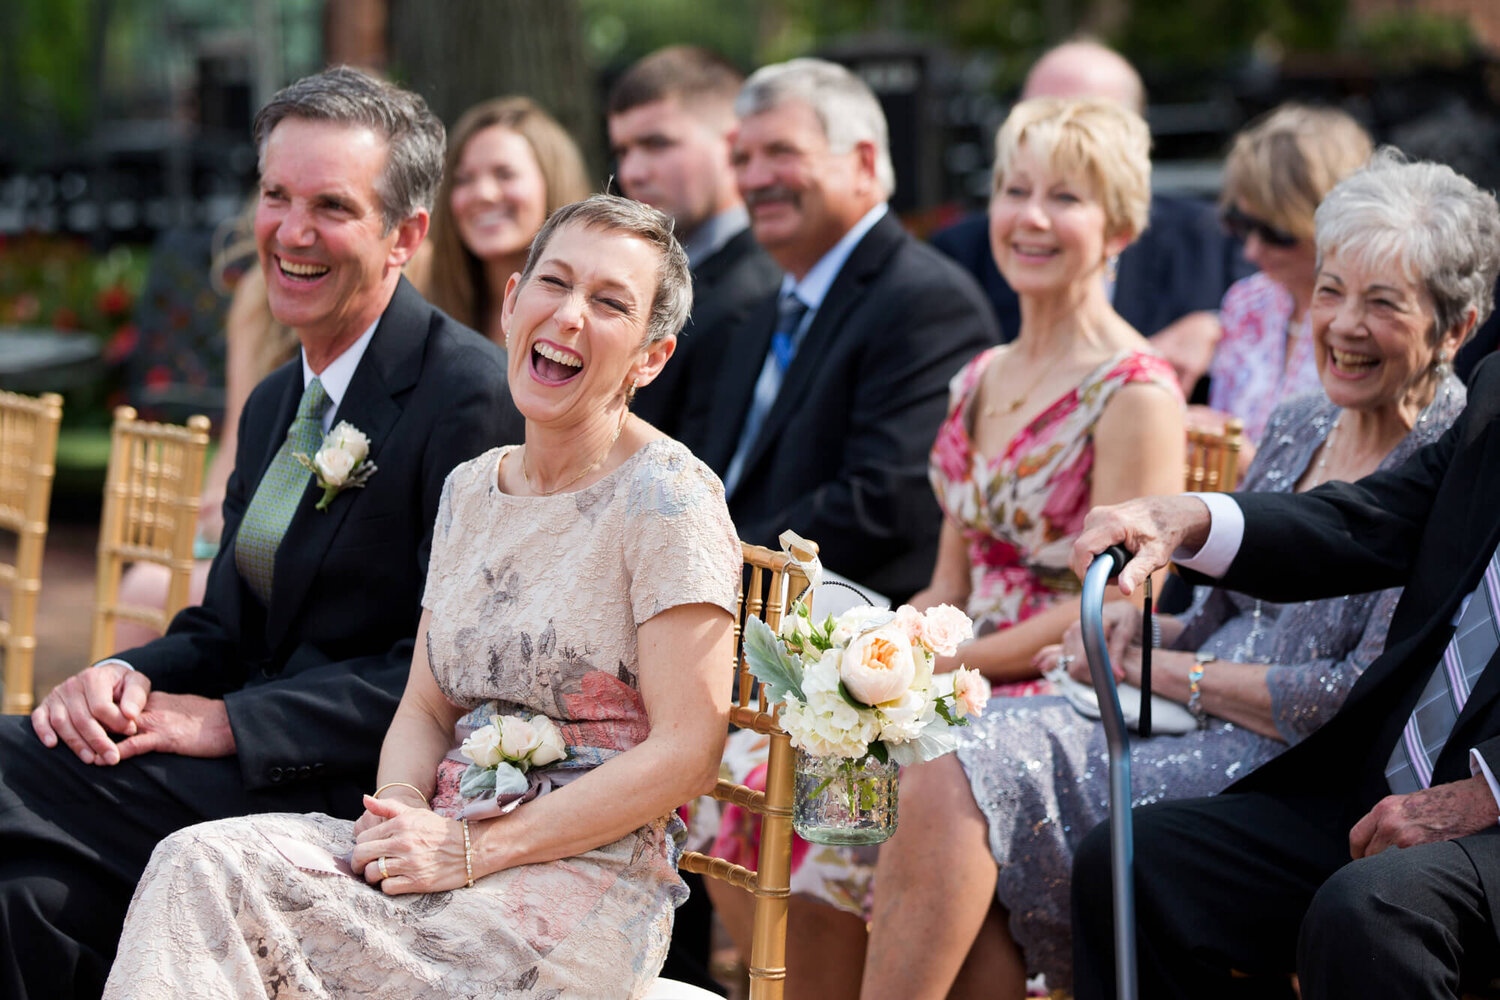 11-mom-dad-laughing-wedding-ceremony-st-louis.jpg